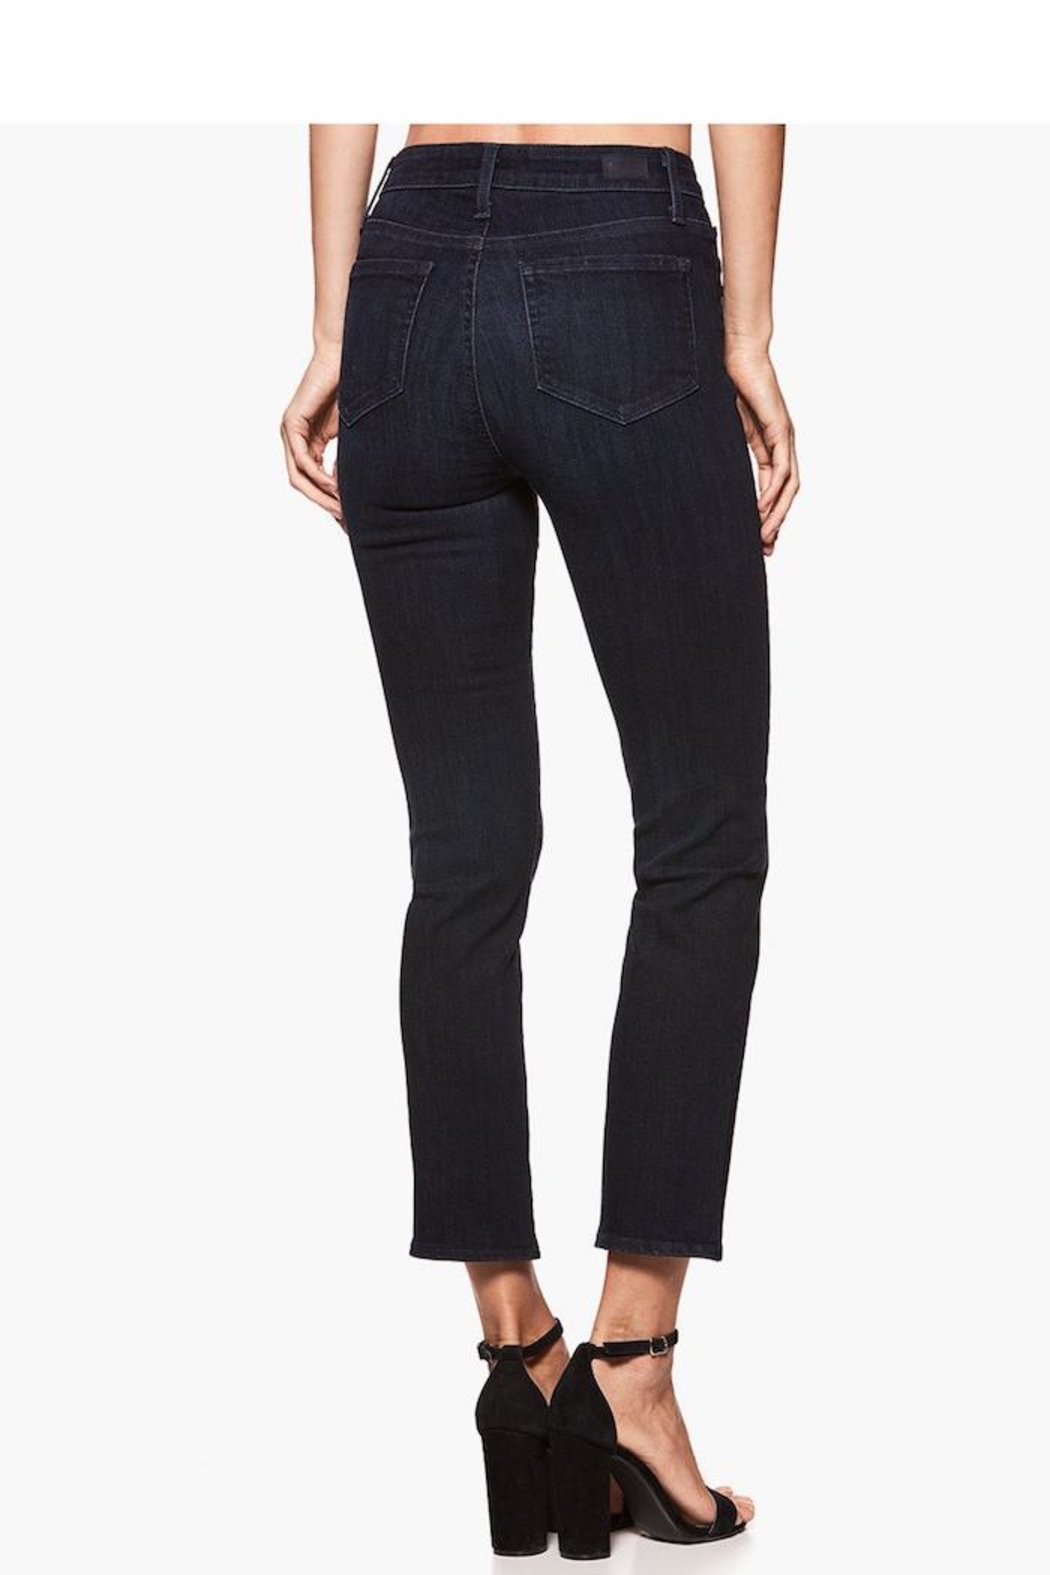 Paige Premium Denim Straight Cropped Jean - Front Full Image